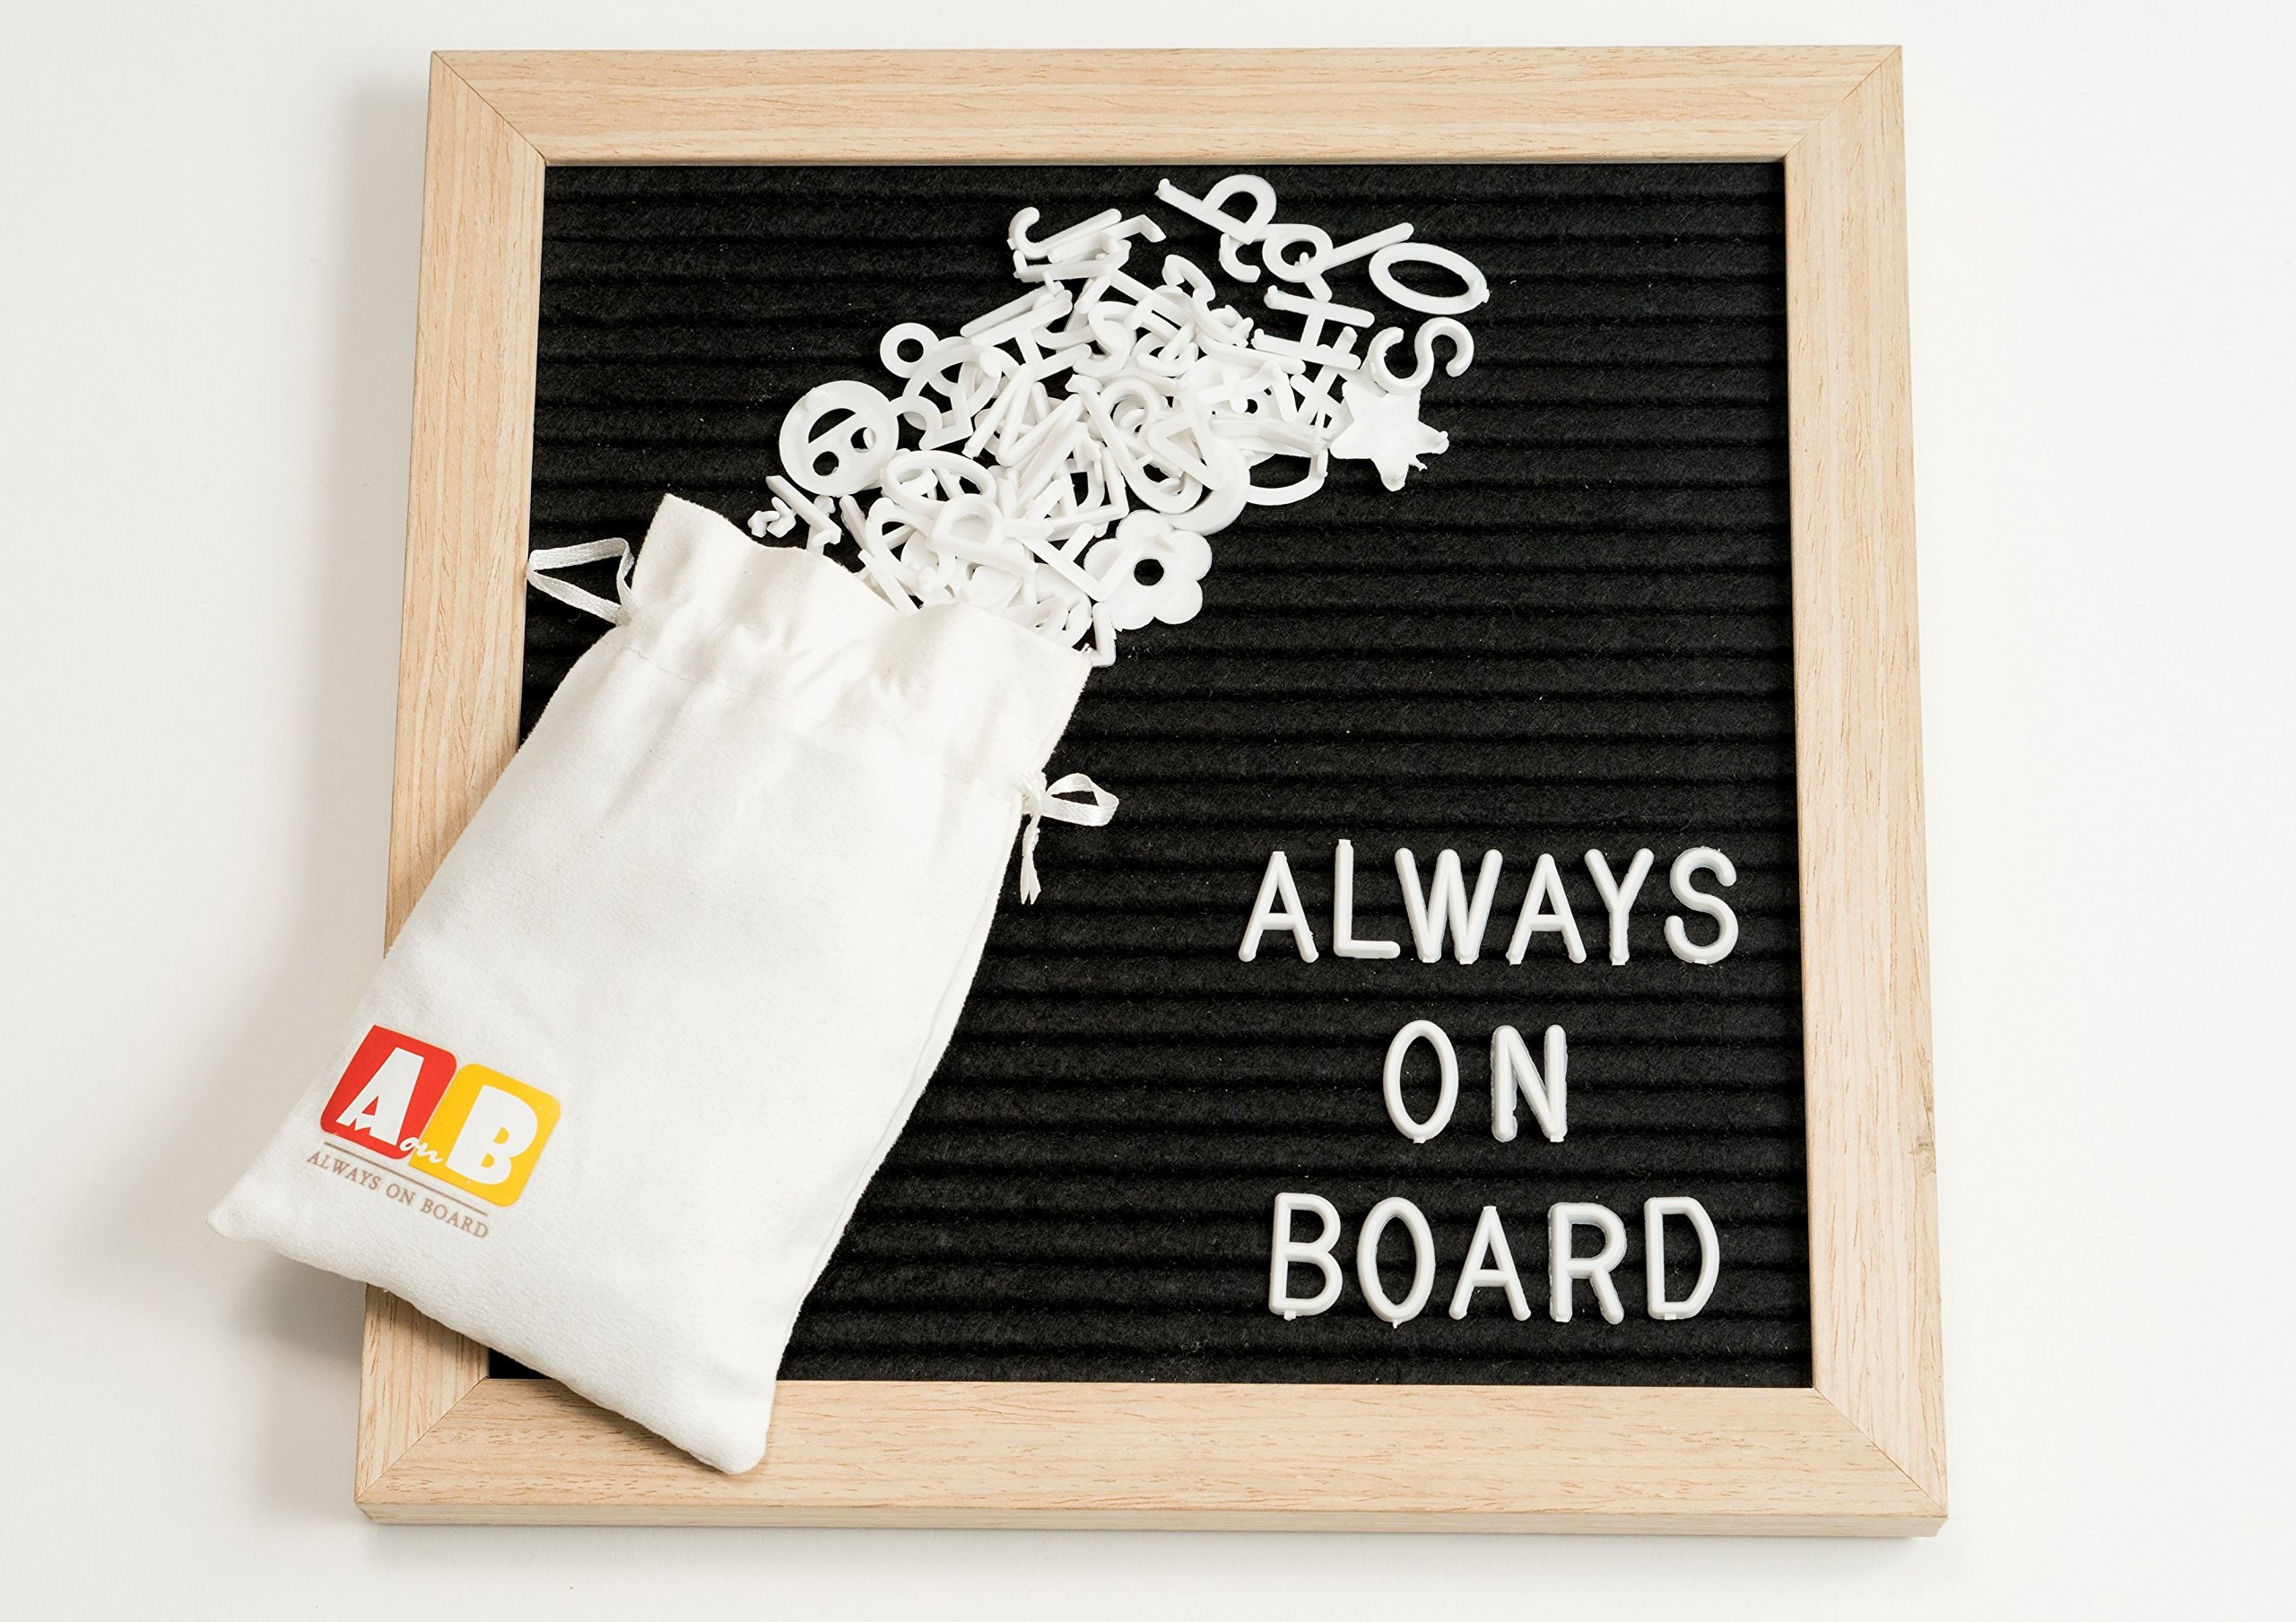 Felt Letter Board By Always On Board-10x10 Decorative Changeable Wood Frame Letterboard With 340 Characters,Numbers & Symbols-Storage Bag & Wood Stand Display Included-Write Messages,Notes...